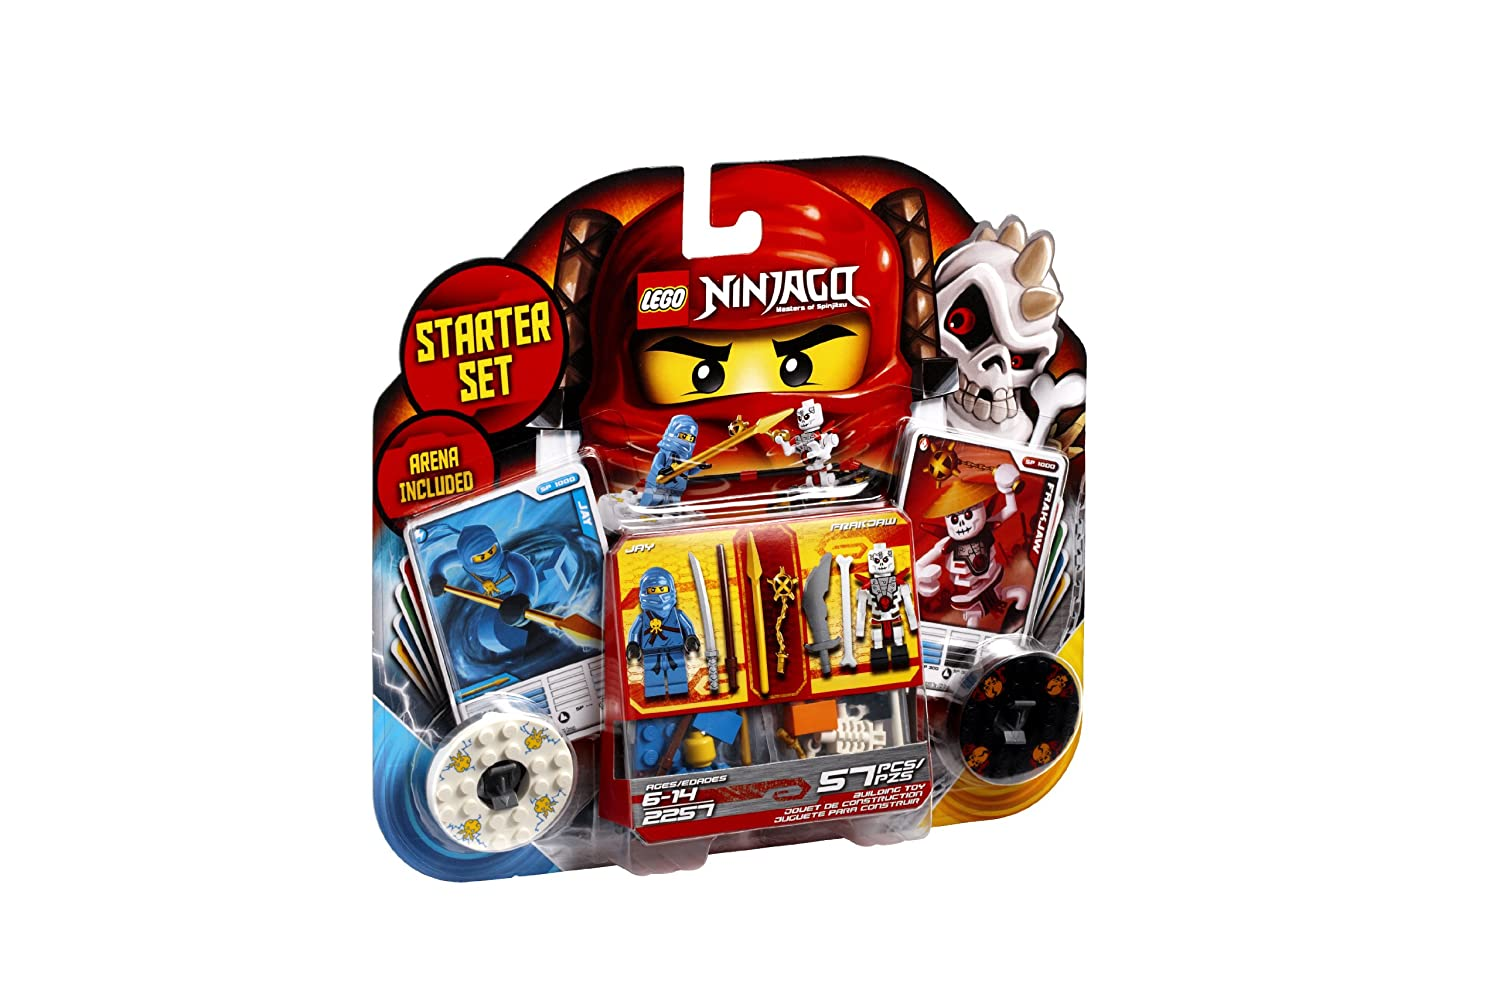 Lego Ninjago Spinjitzu Starter Set 2257 Discontinued By Wiring Harness Decal Omc Manufacturer Toys Games